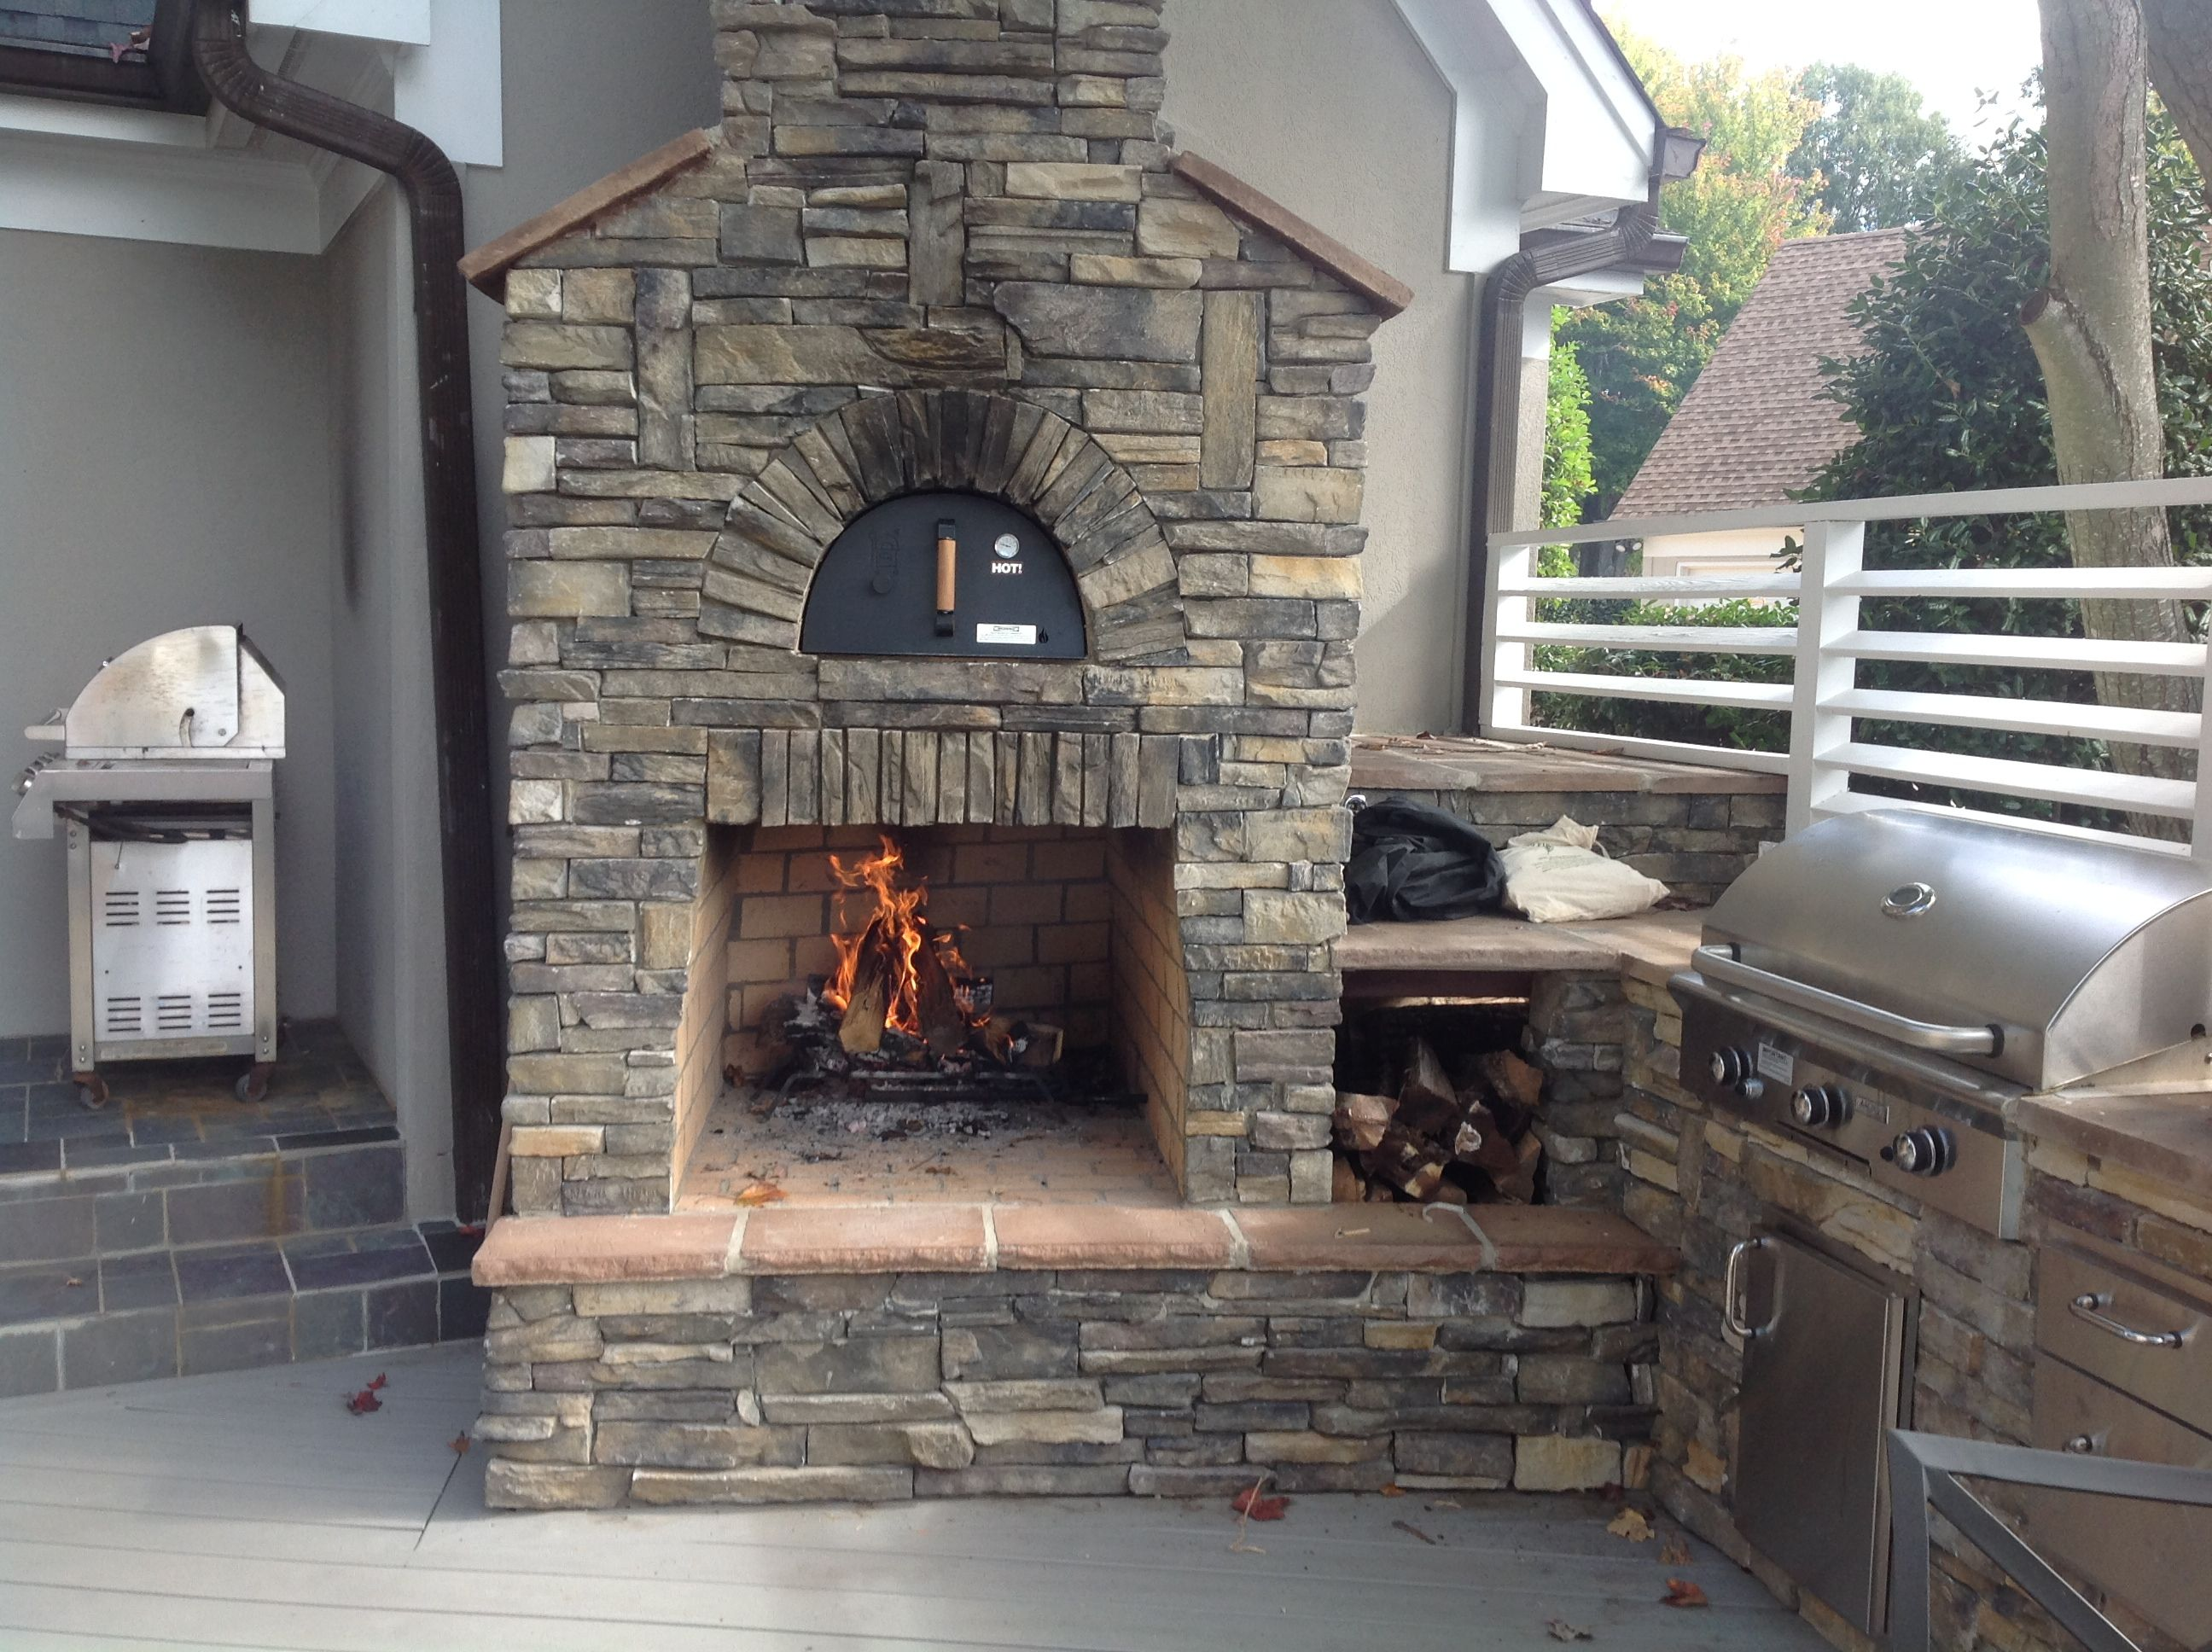 custom outdoor fireplace and pizza oven with an outdoor kitchen on